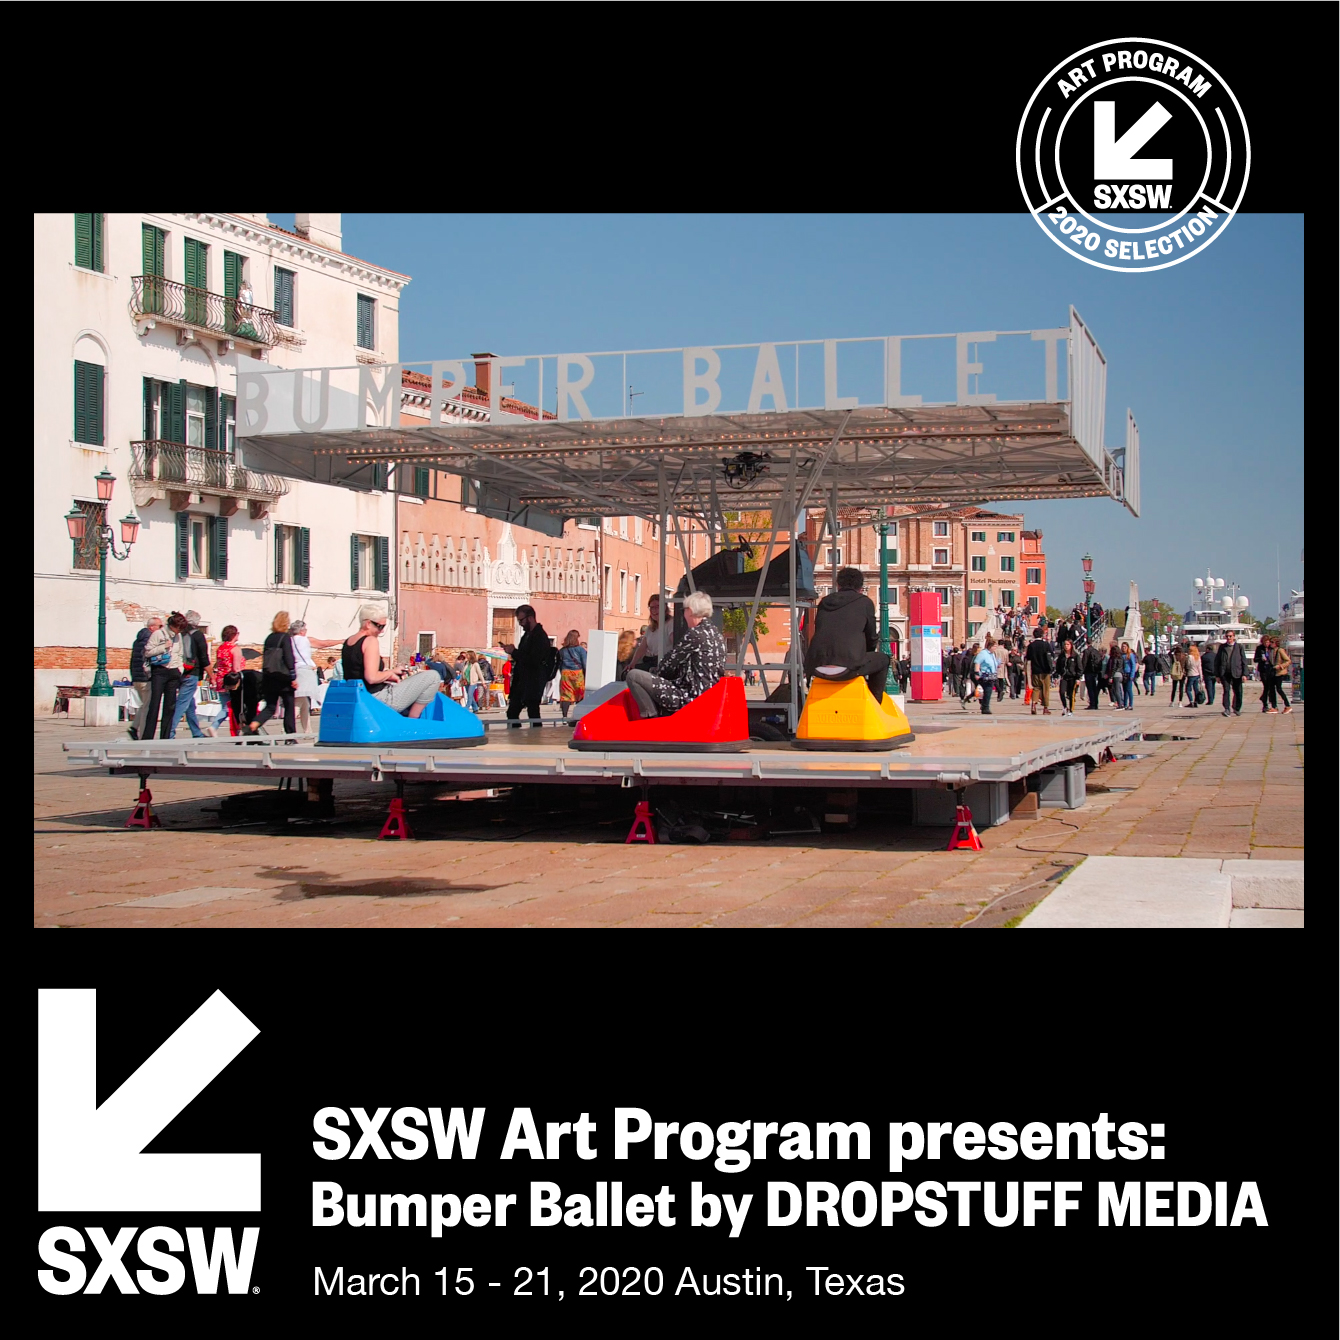 Bumper Ballet is part of the official selection of the SXSW Art Program 2020